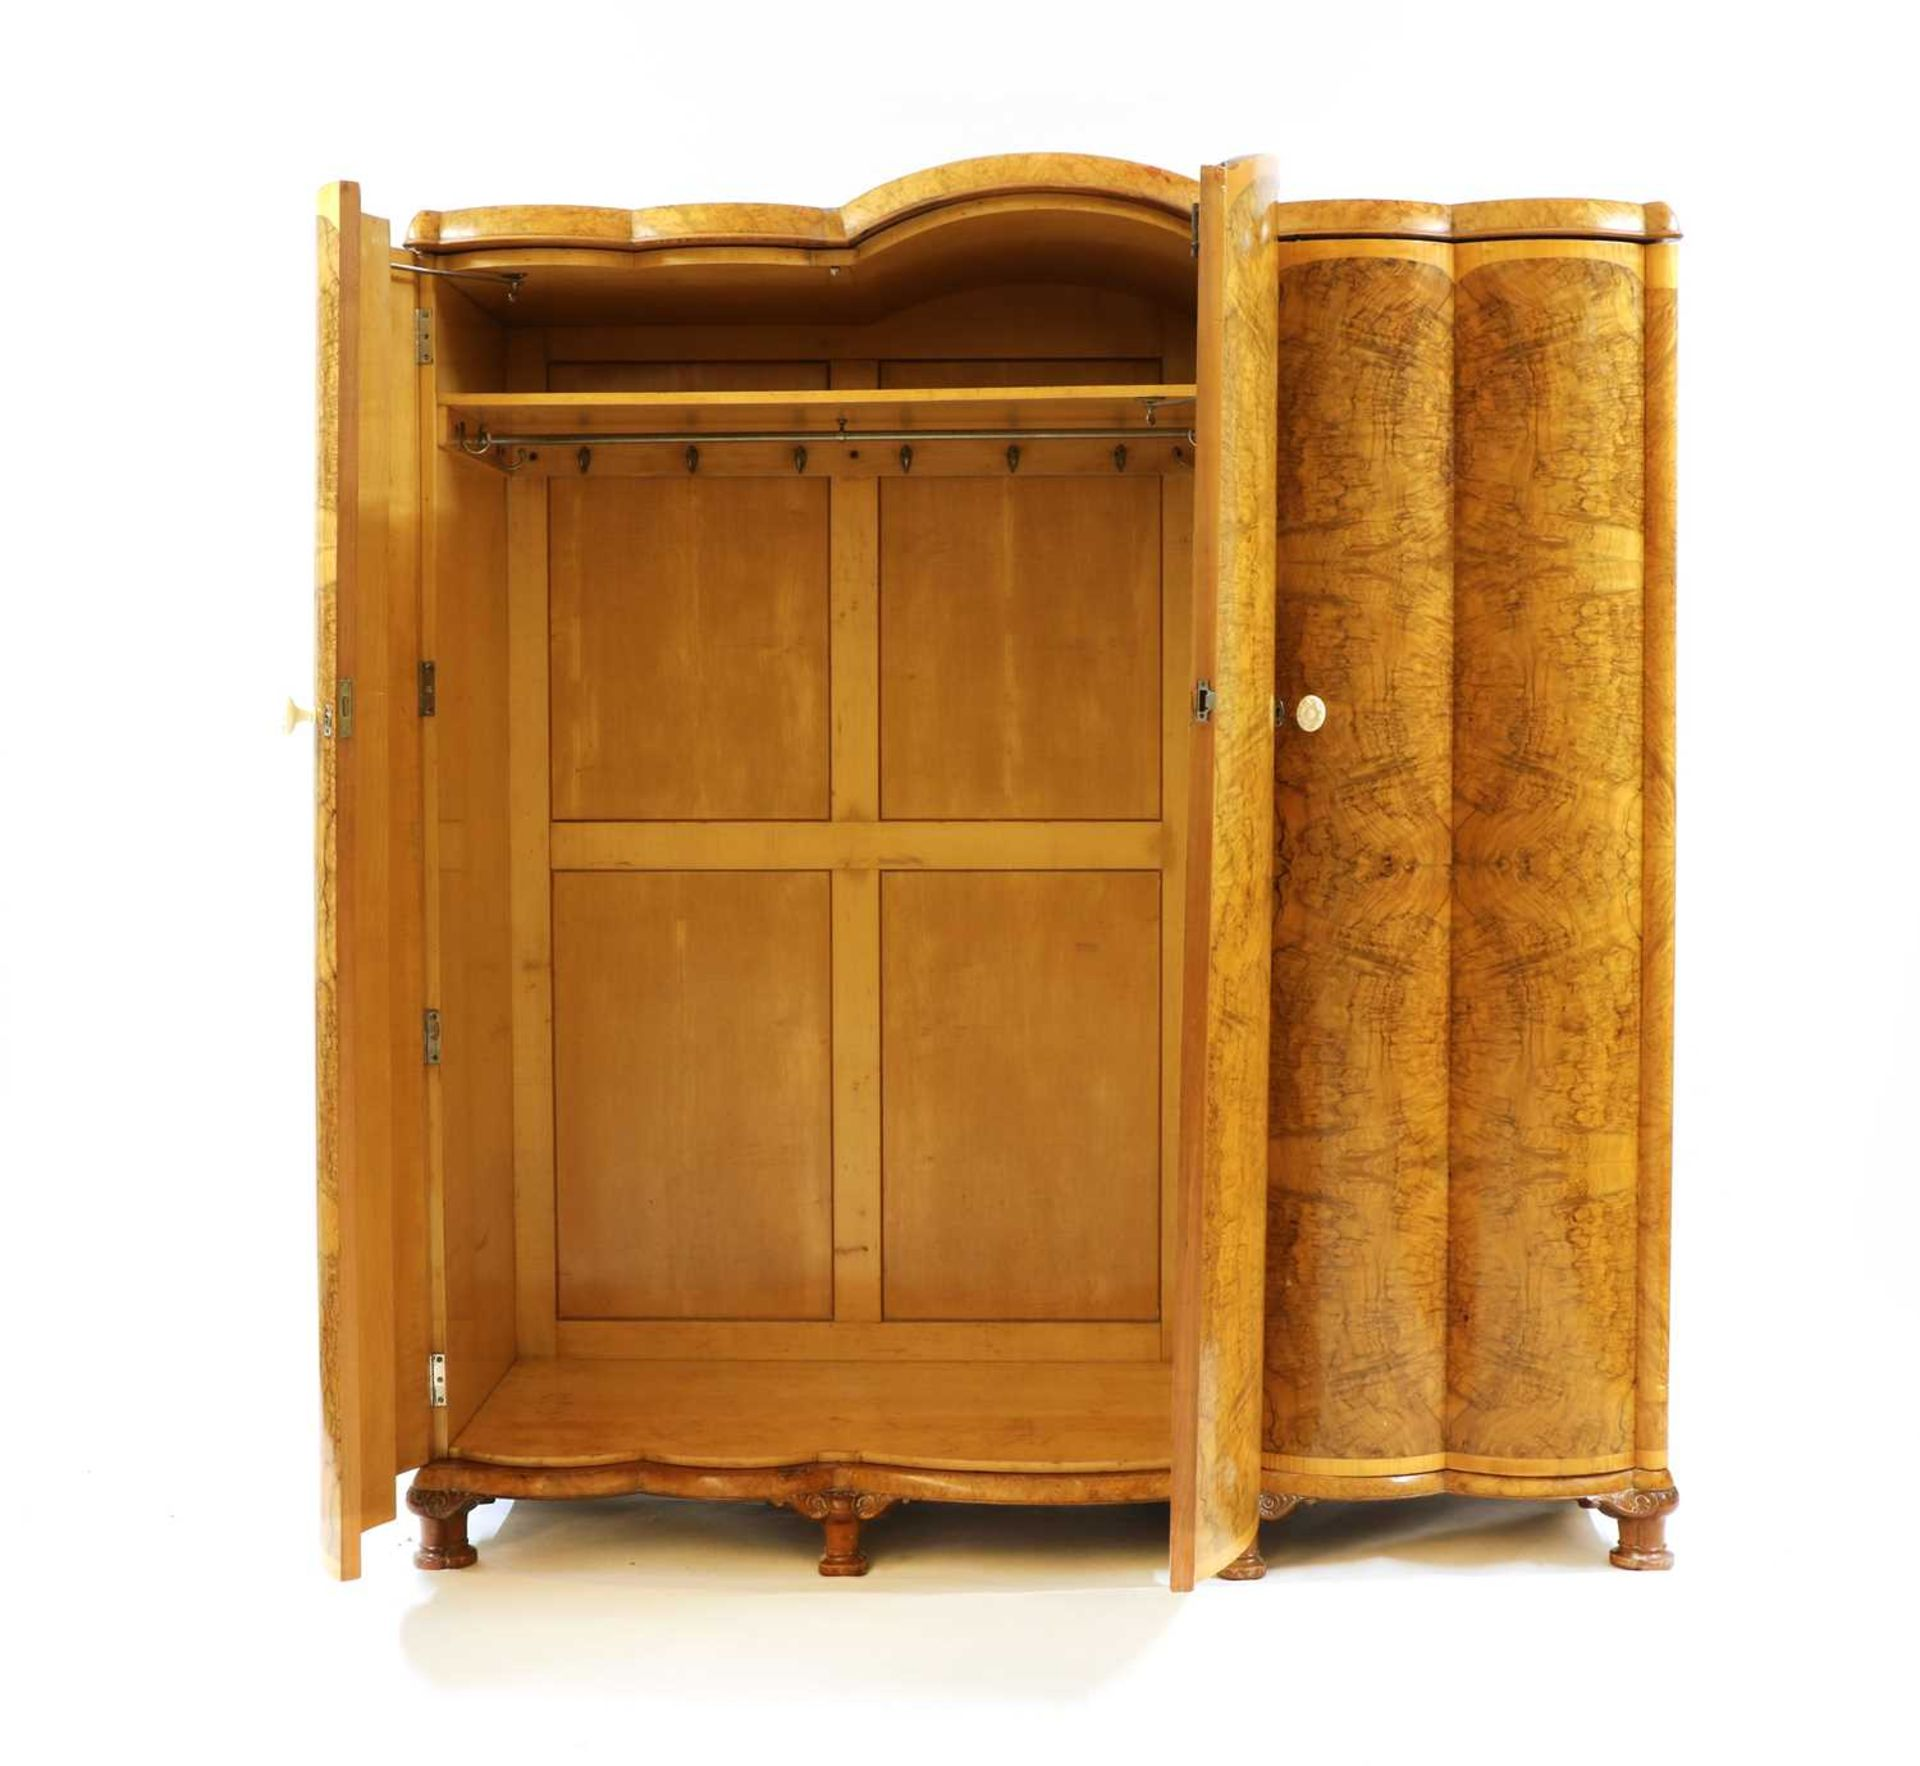 An Art Deco burr walnut and maple bedroom suite, - Image 7 of 45